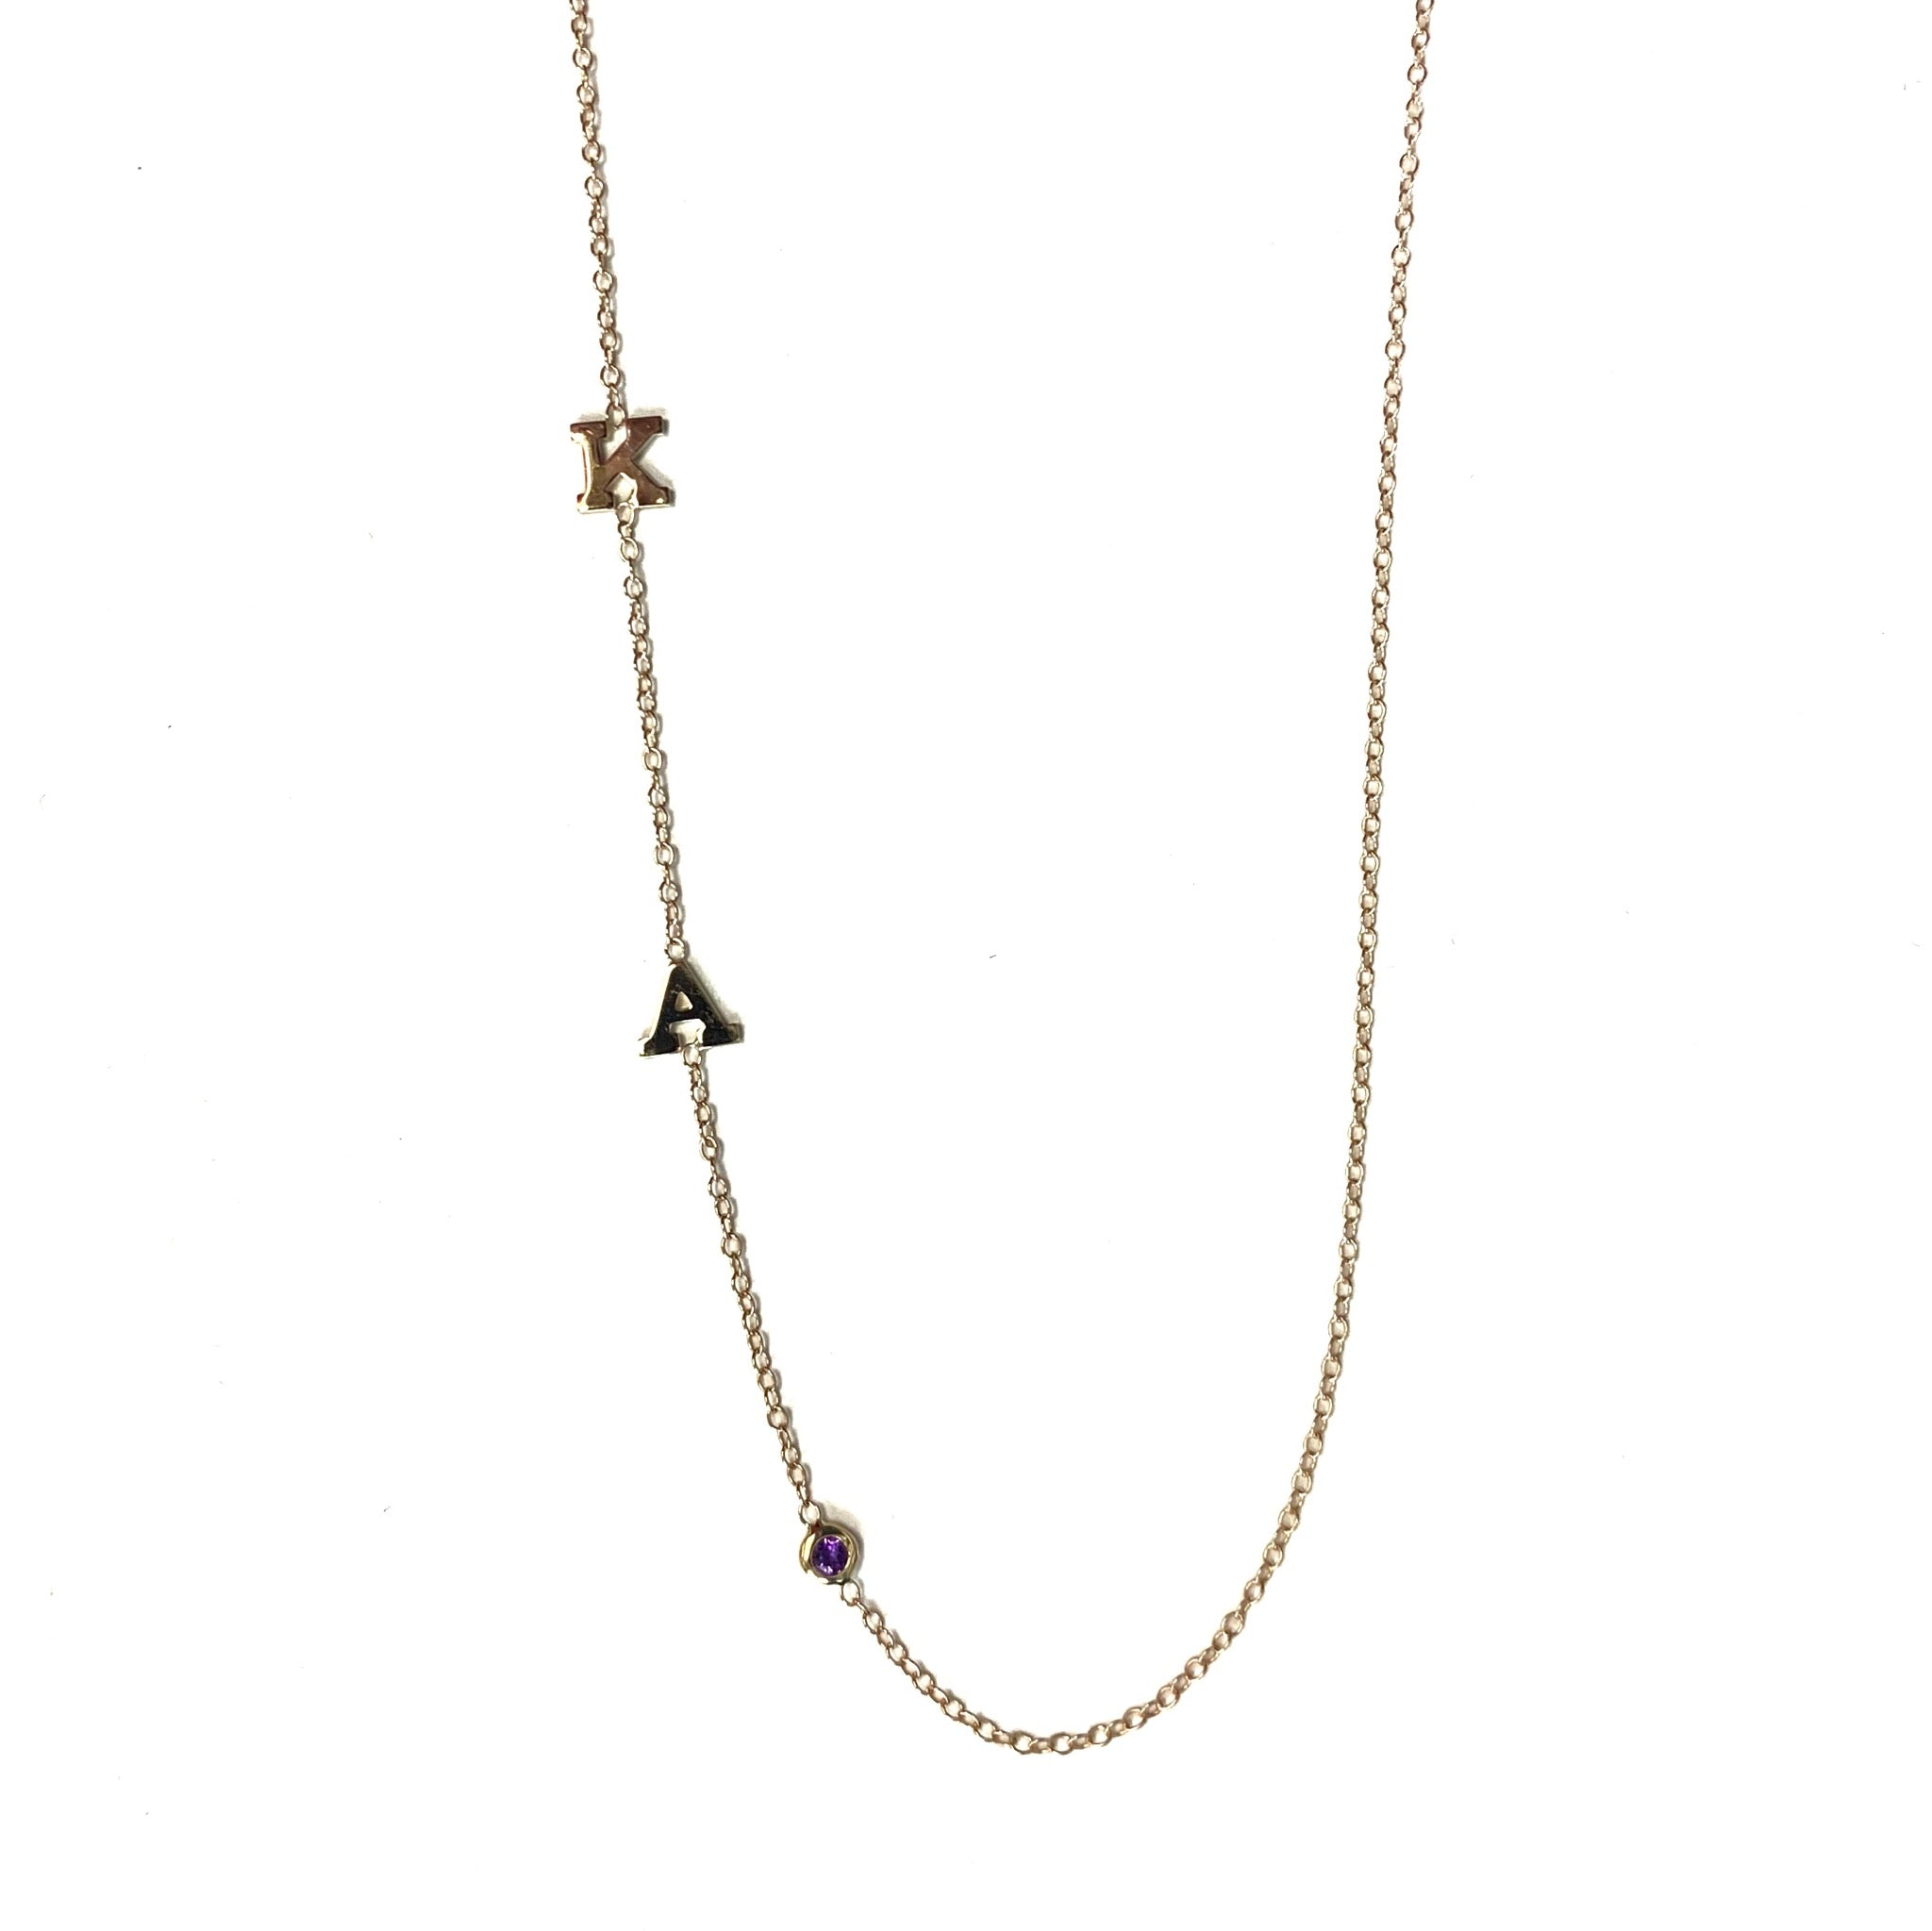 14K Gold Two Initial and Birthstone Necklace